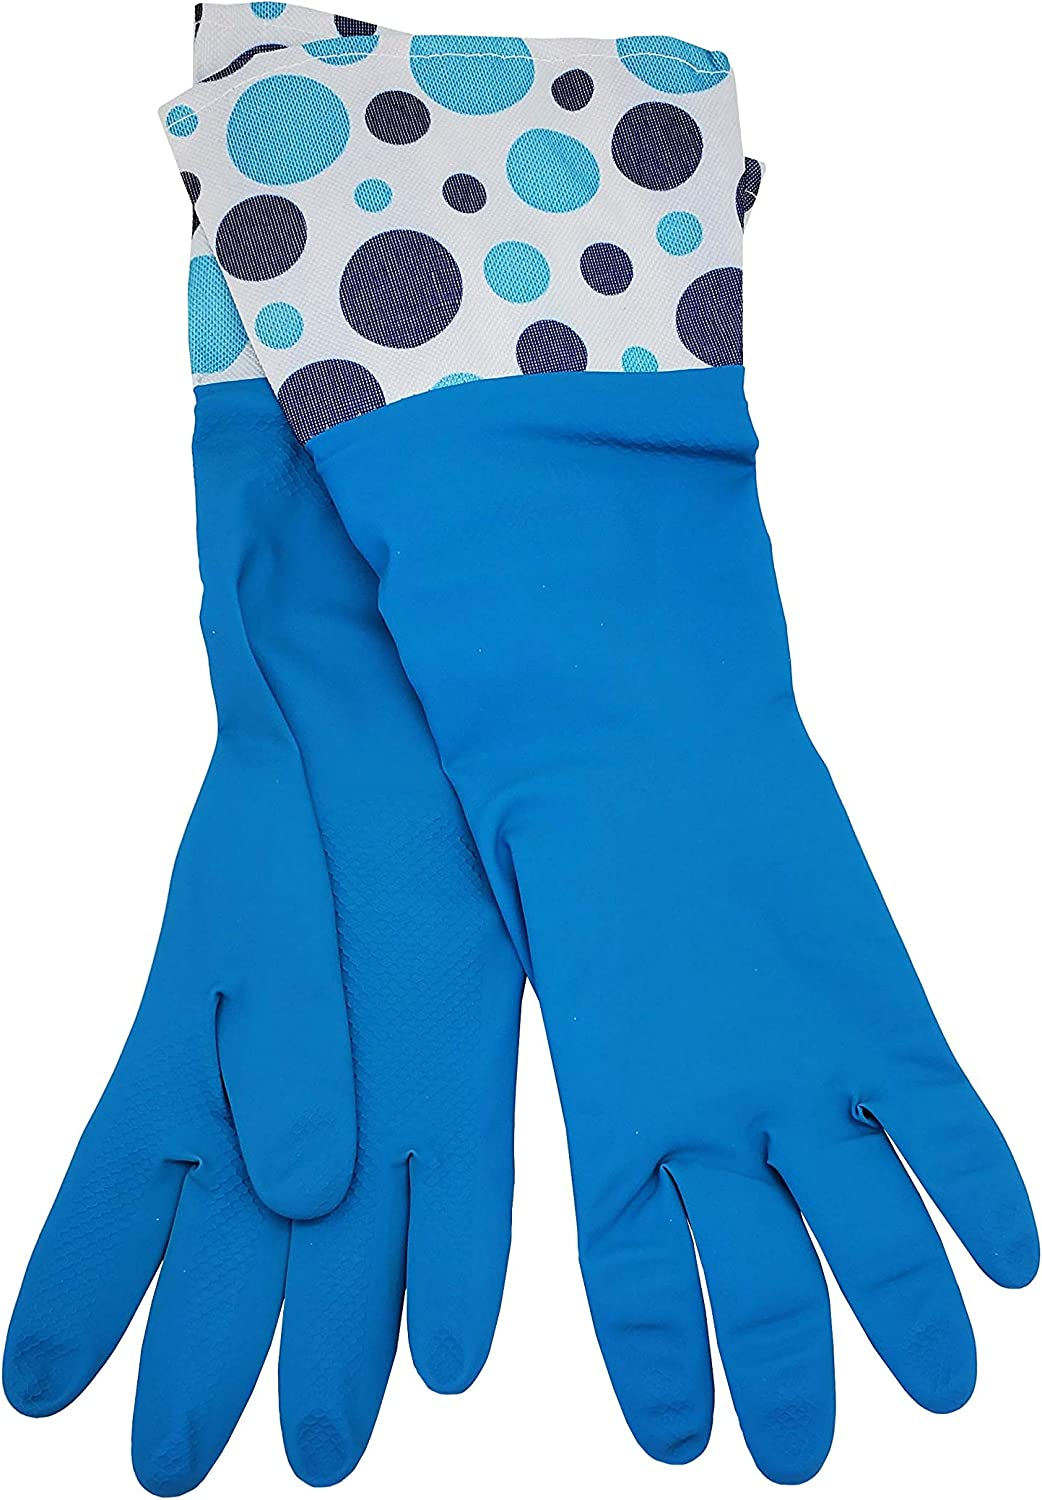 LANON Wahoo PVC Household Cleaning Gloves Non-Slip Small Reusable Unlined Dishwashing Gloves